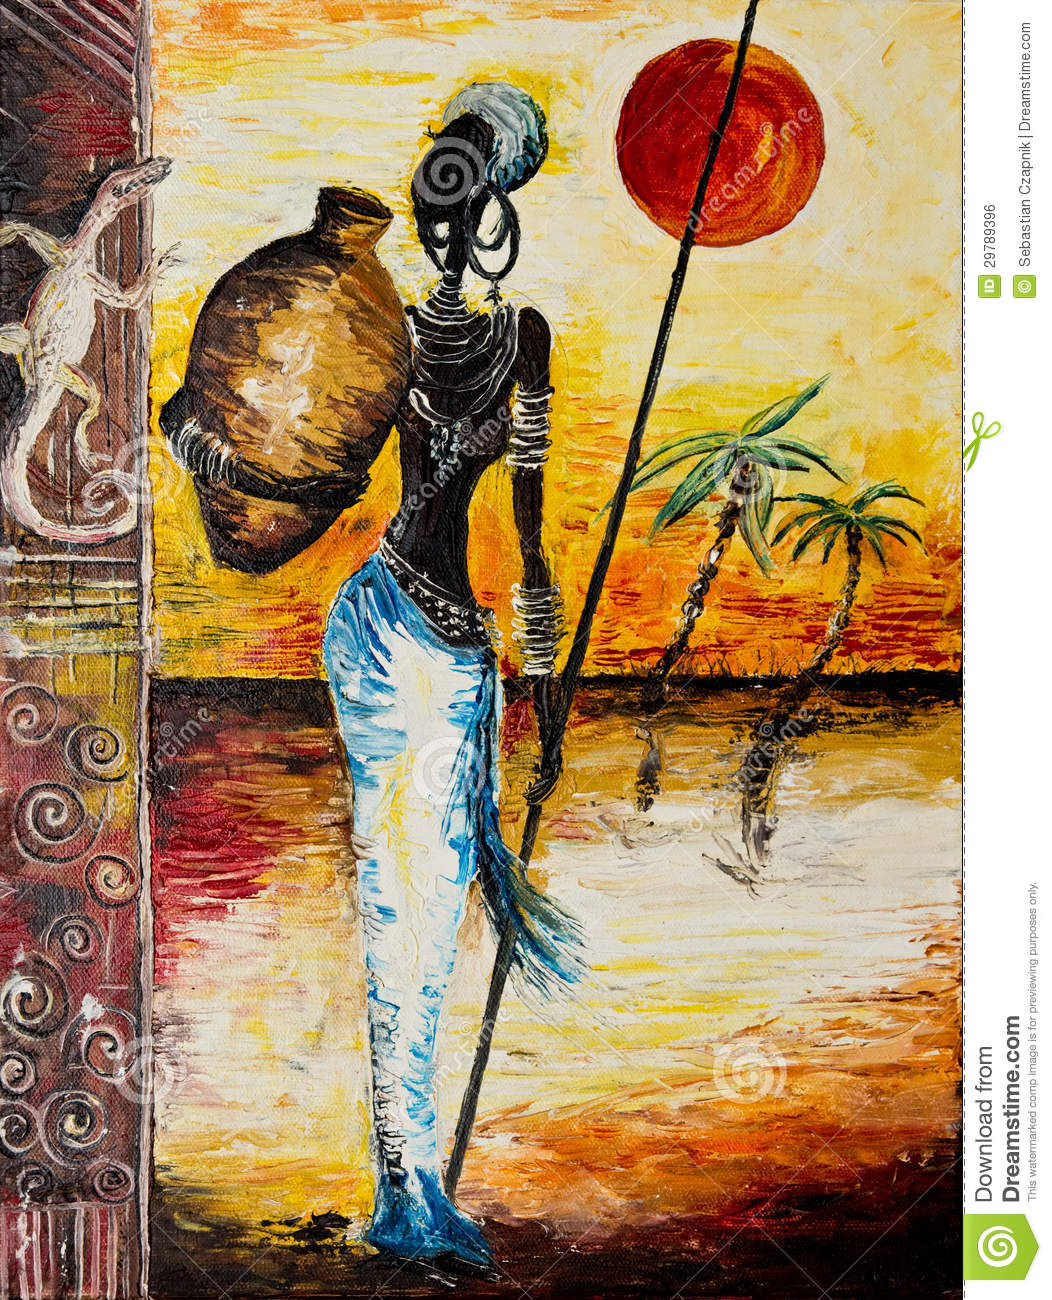 Details Of African Woman Painting Stock Photo Image Of Theme